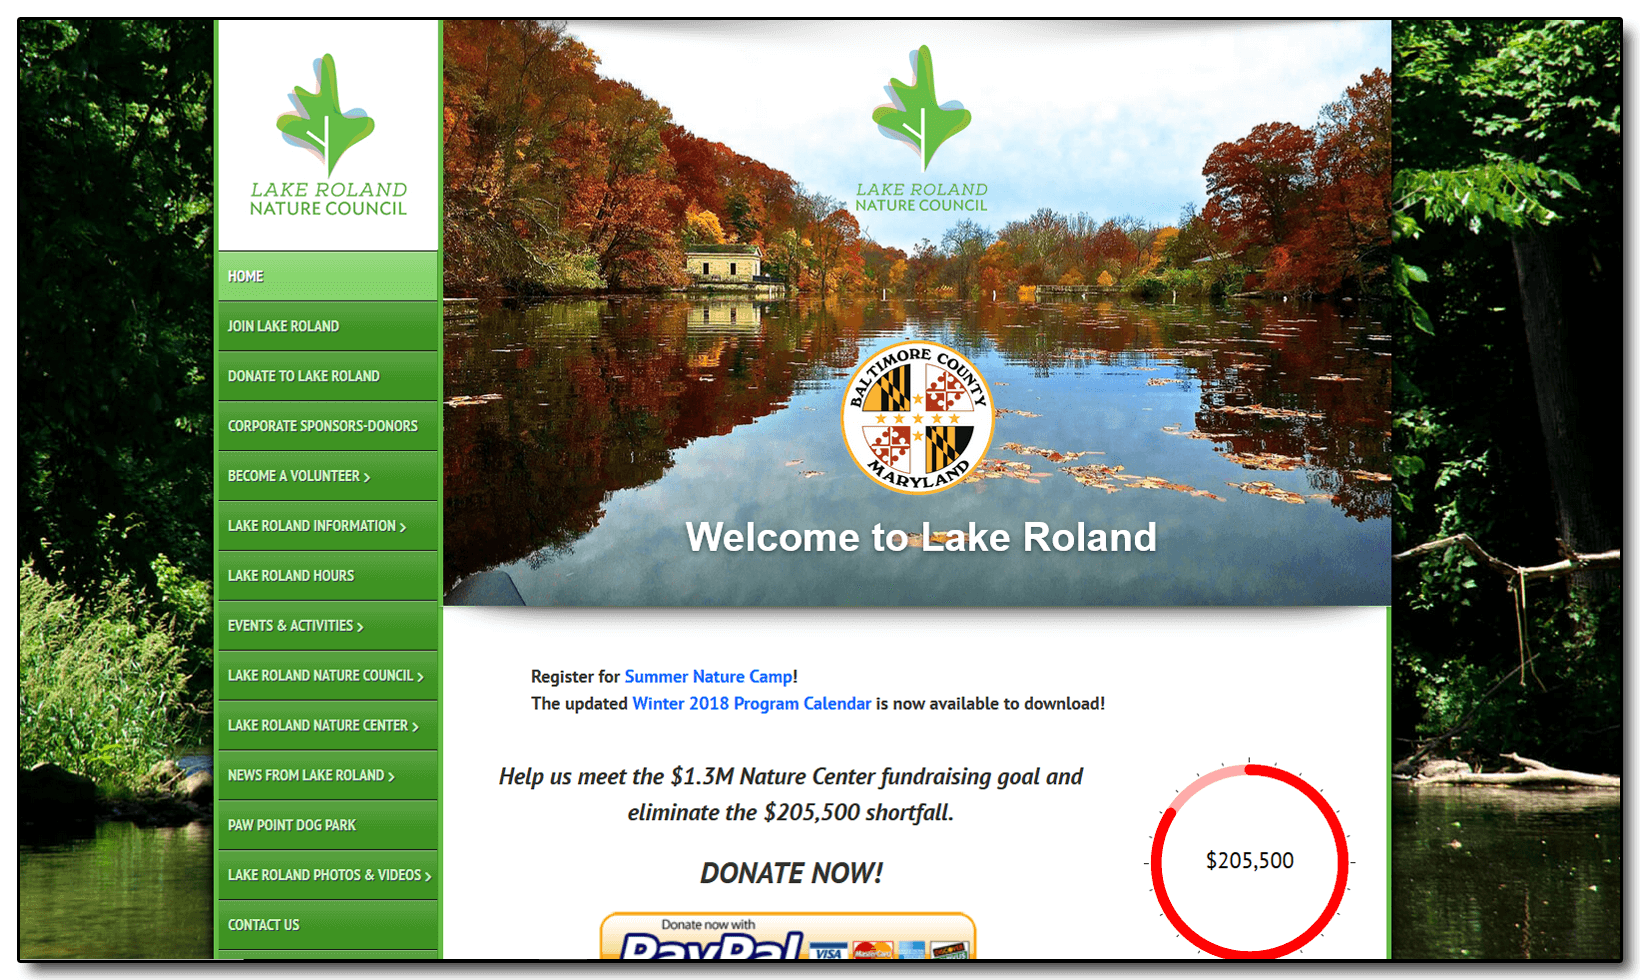 Lake Roland Nature Council